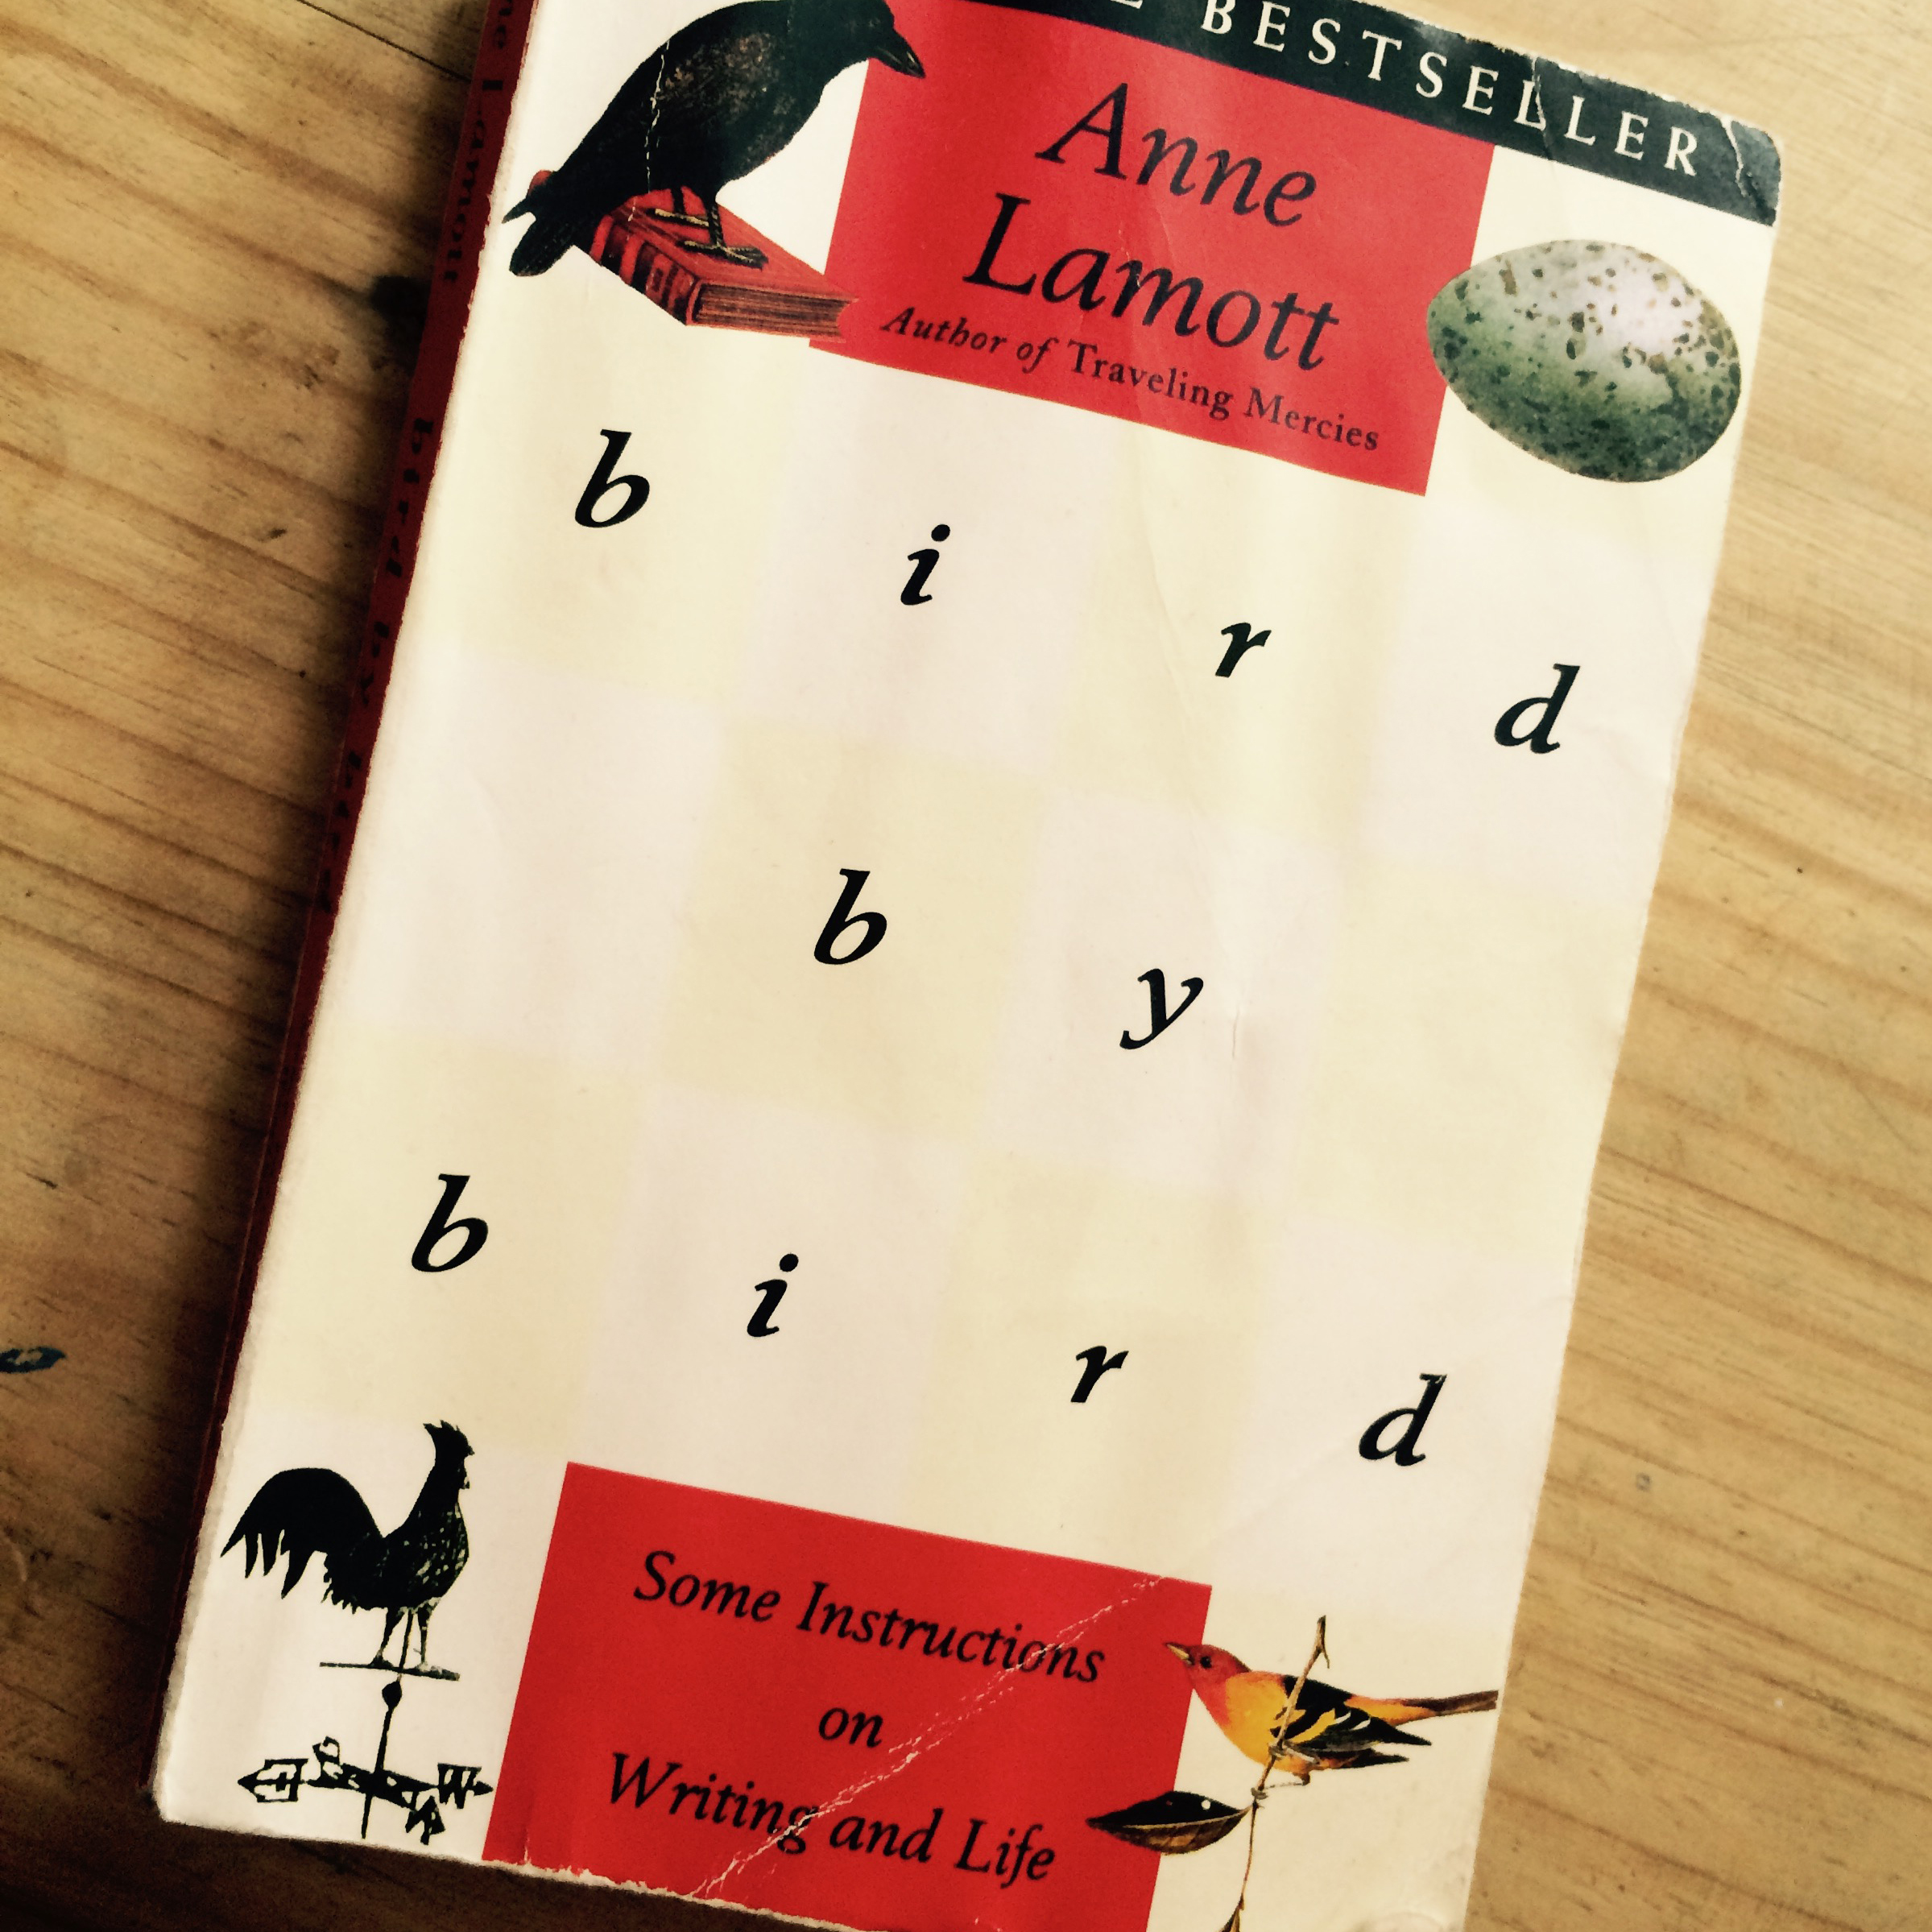 - Bird by Bird has been recommended by almost every editor I've talked to.